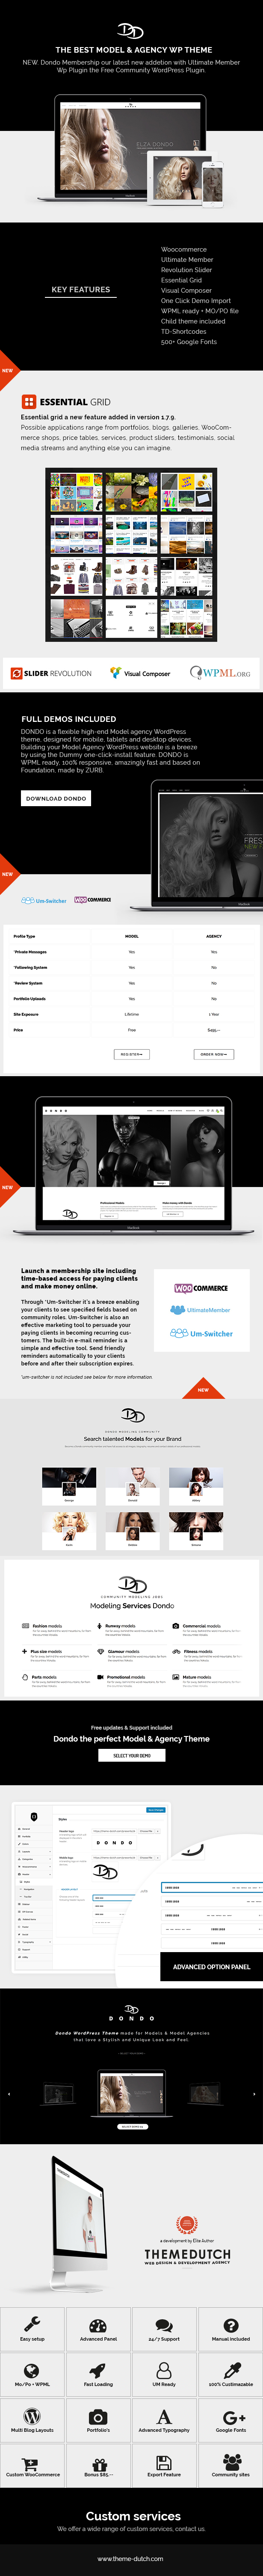 Dondo model agency wordpress theme